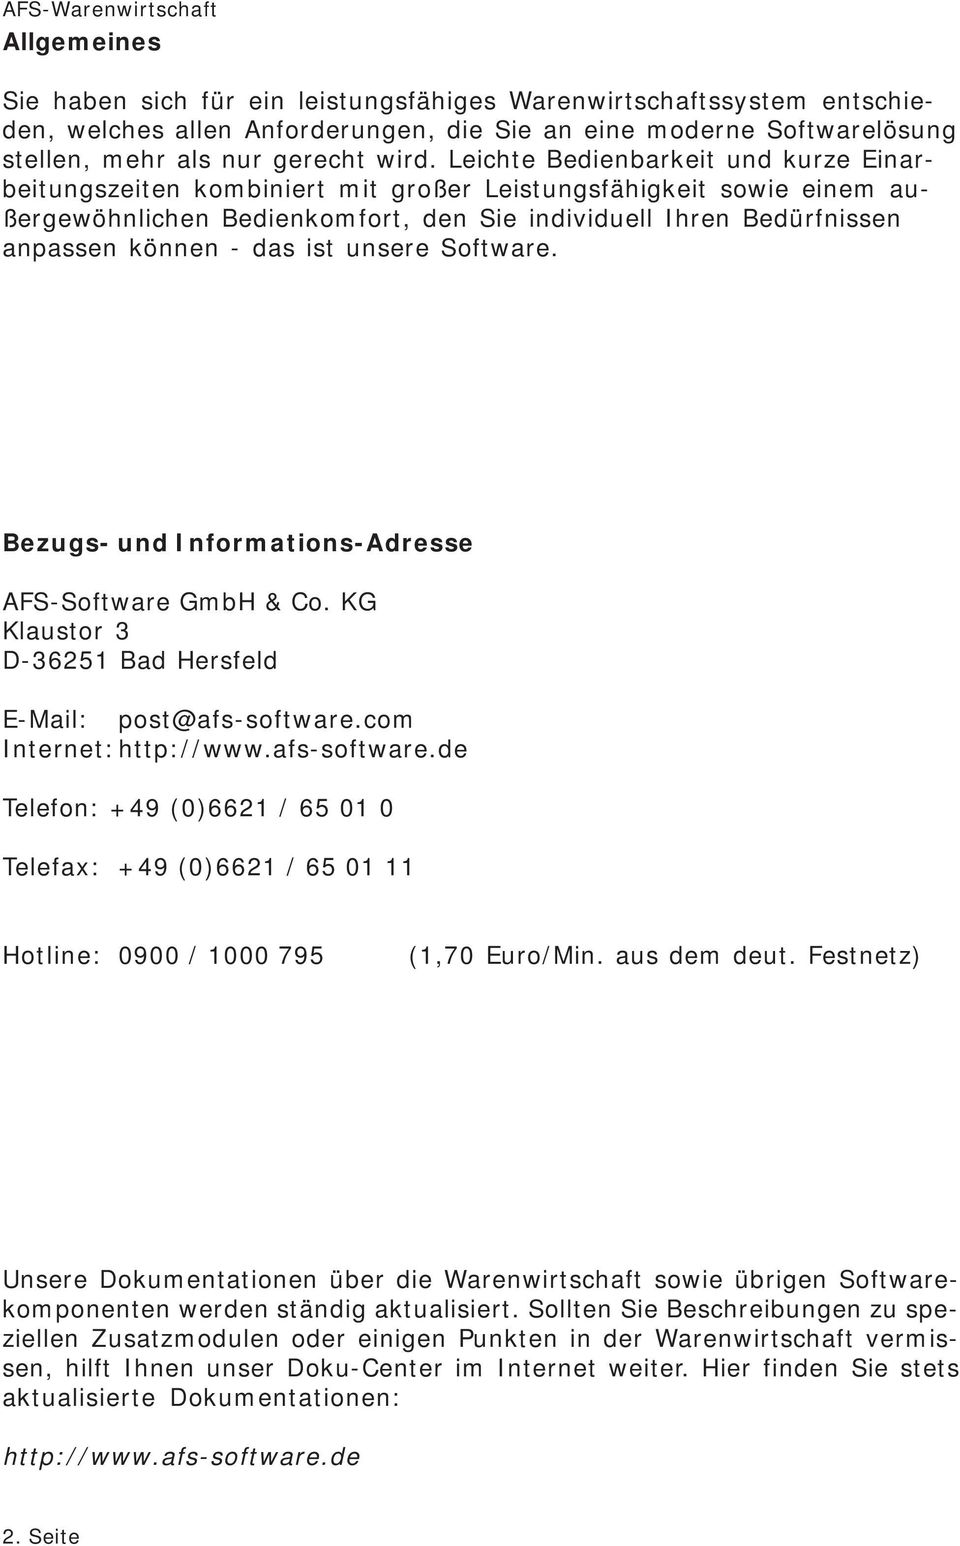 ist unsere Software. Bezugs- und Informations-Adresse AFS-Software GmbH & Co. KG Klaustor 3 D-36251 Bad Hersfeld E-Mail: post@afs-software.